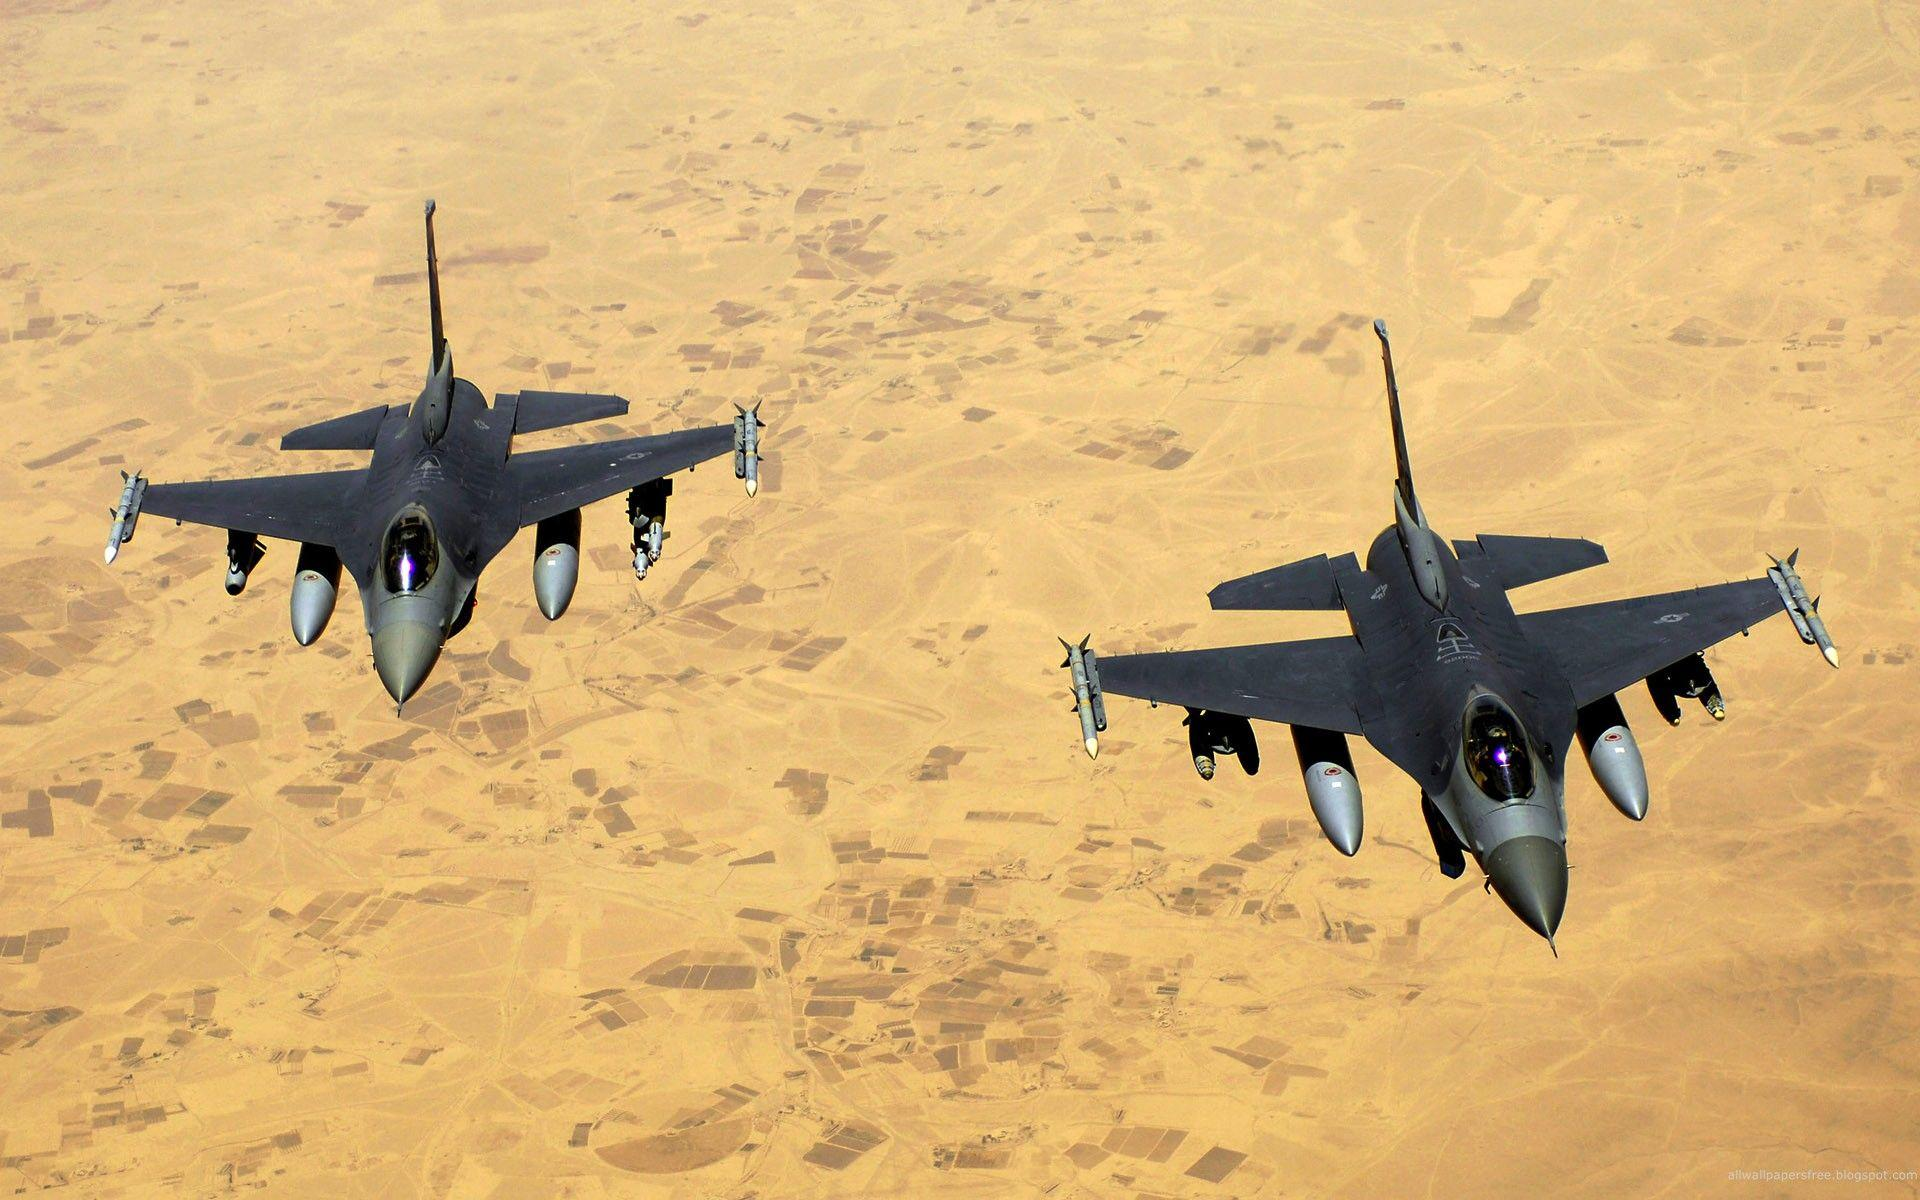 Airforce Jet Fighters Wallpapers | HD Wallpapers | ID #5968